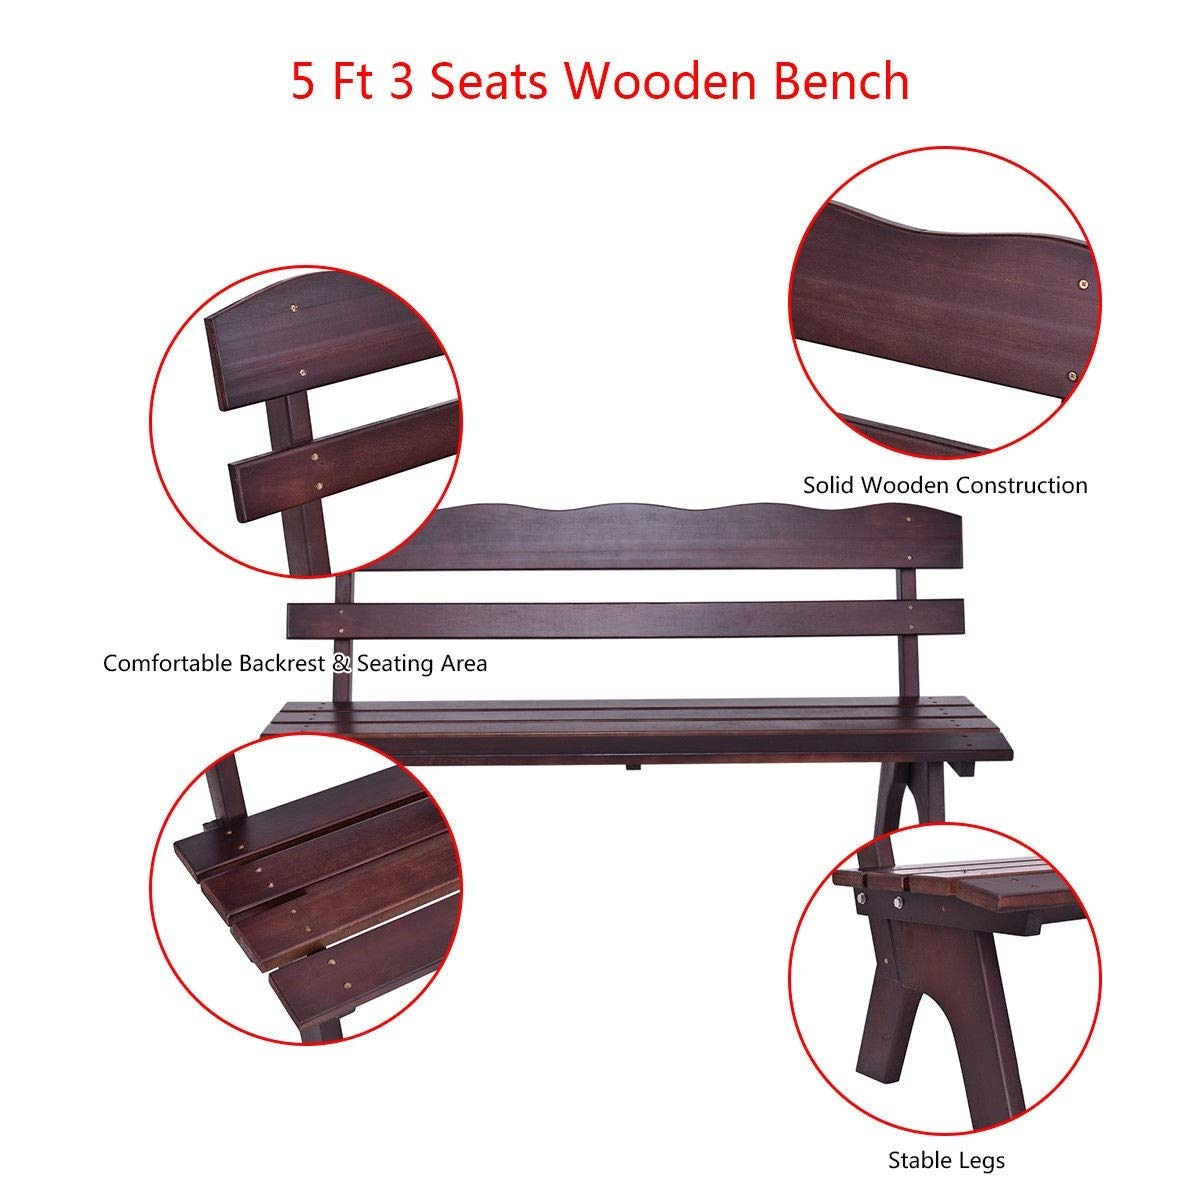 MD Group 5 ft 3 Seats Outdoor Wooden Garden Bench Chair, Brown by MD Group (Image #7)